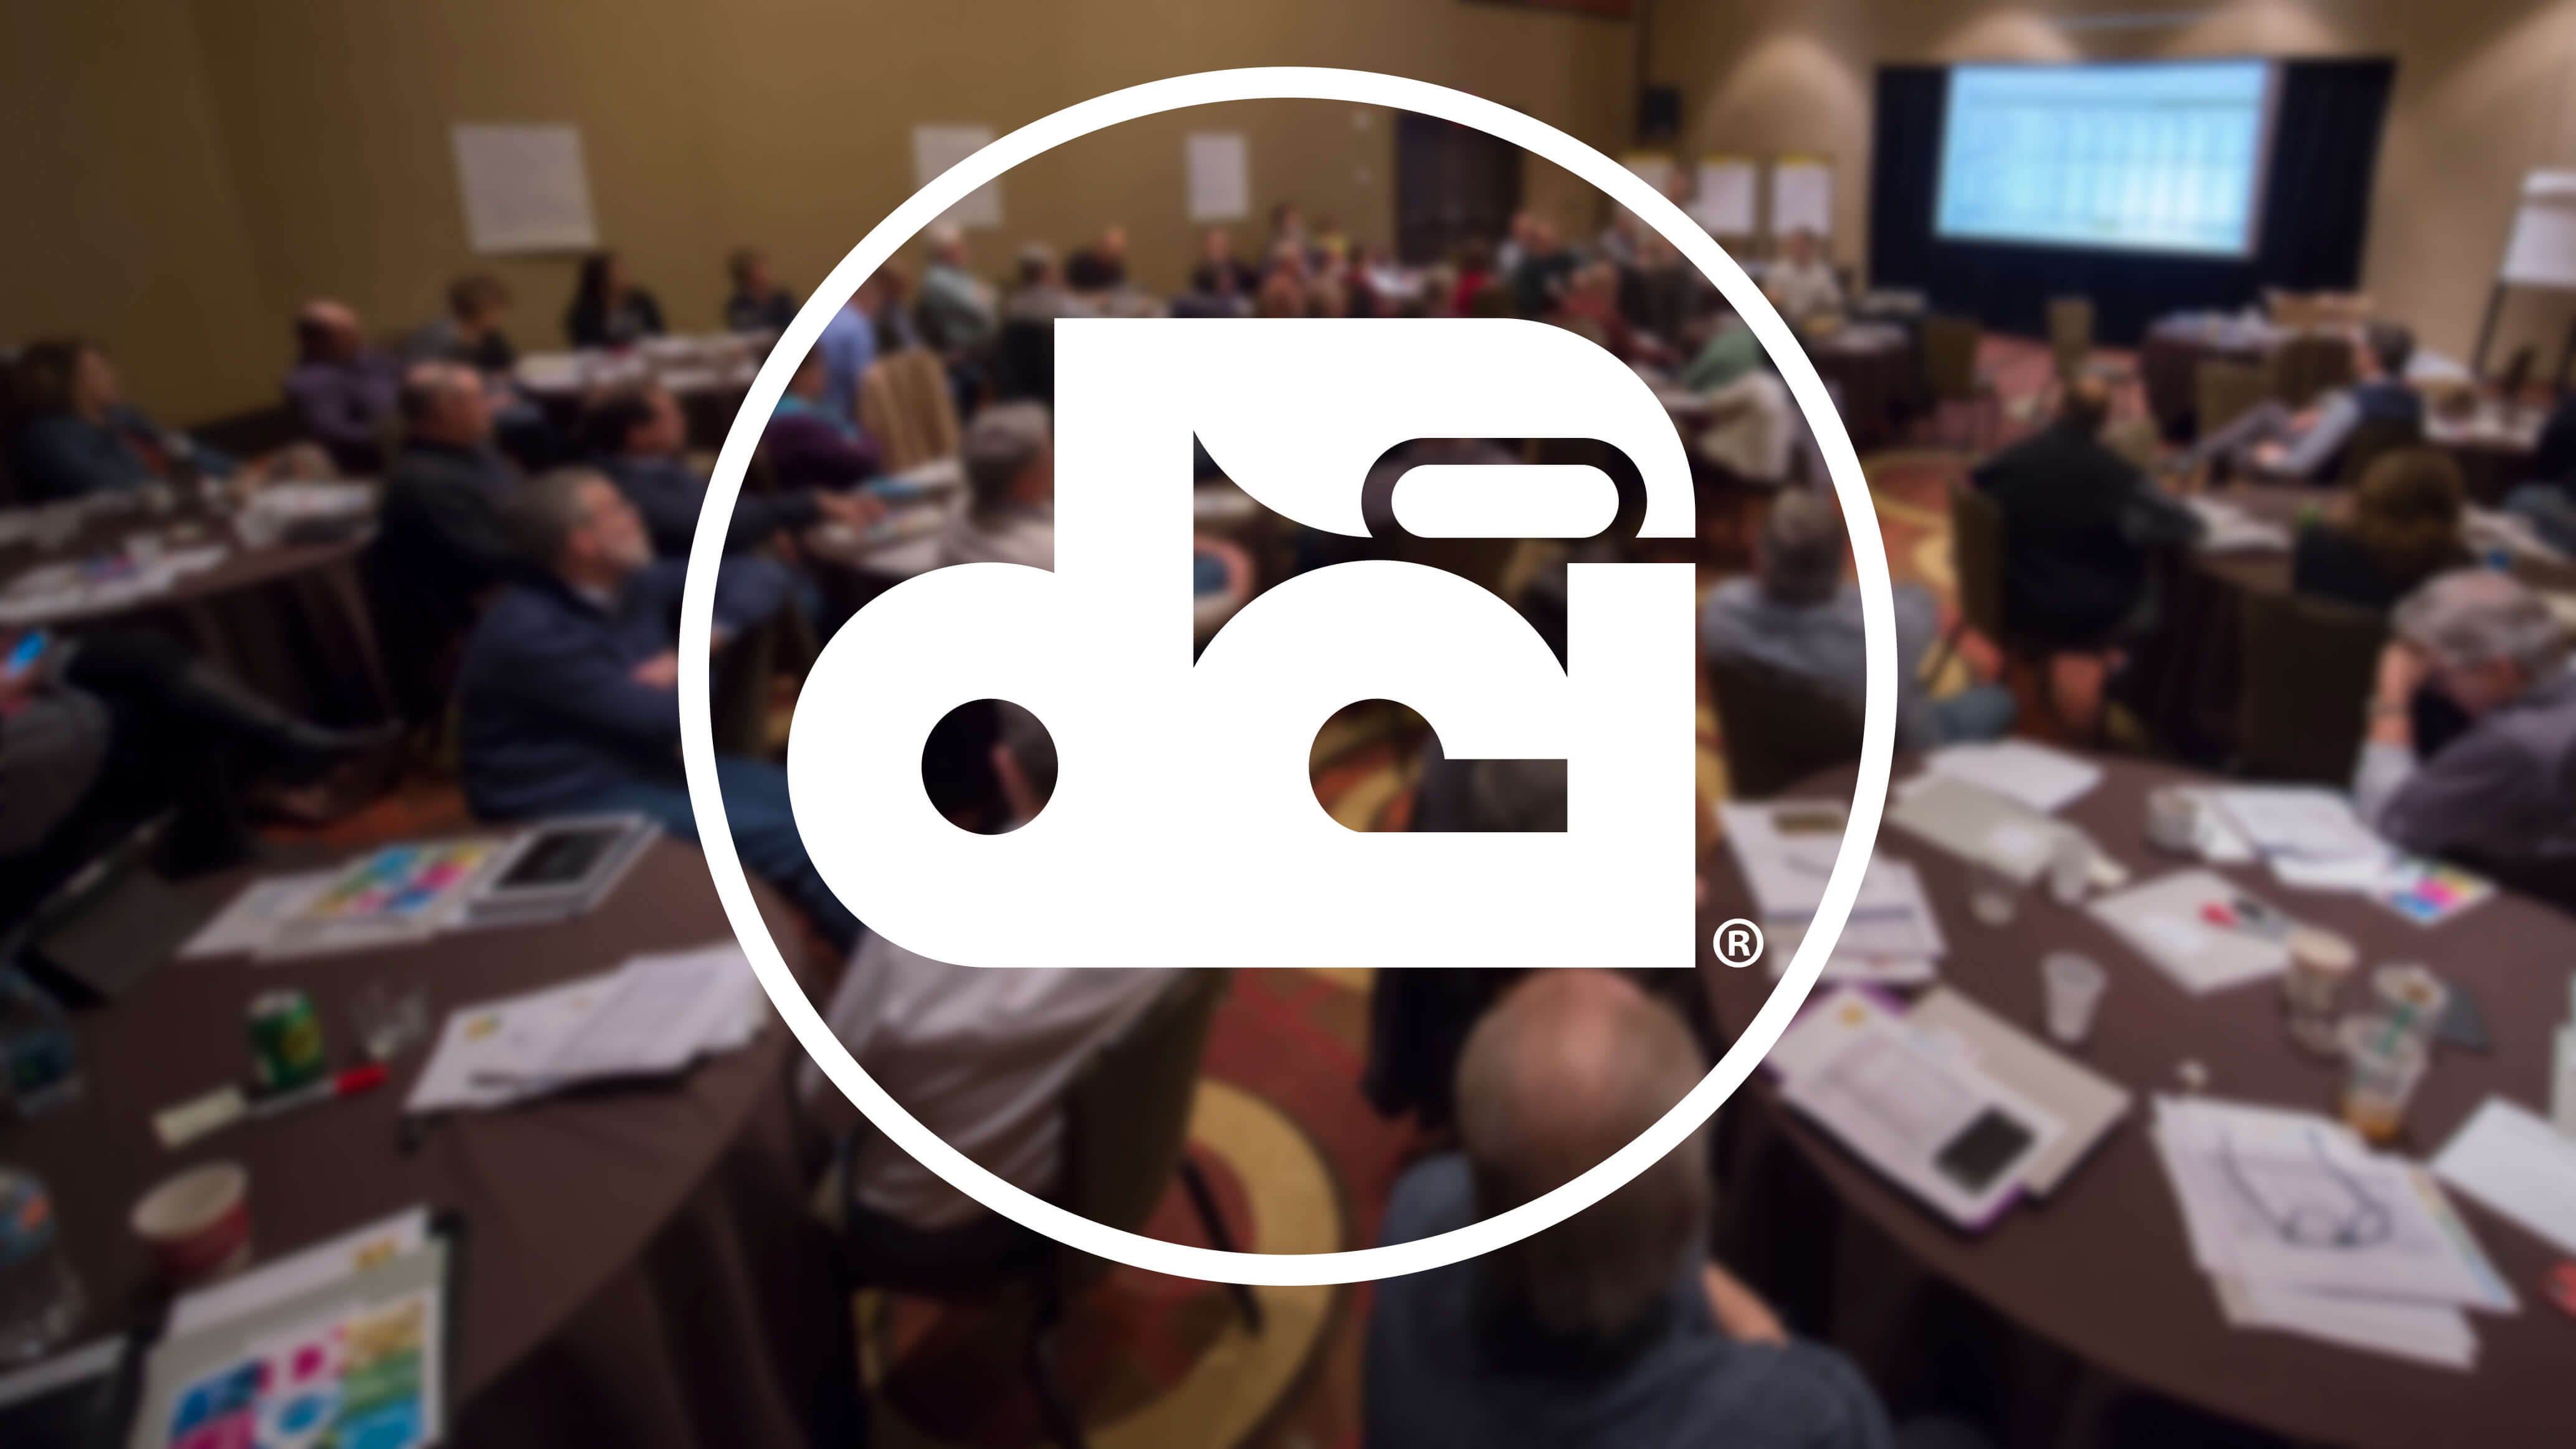 DCI will focus on health, wellness and safety aspects of all activities during upcoming organization-wide annual meeting